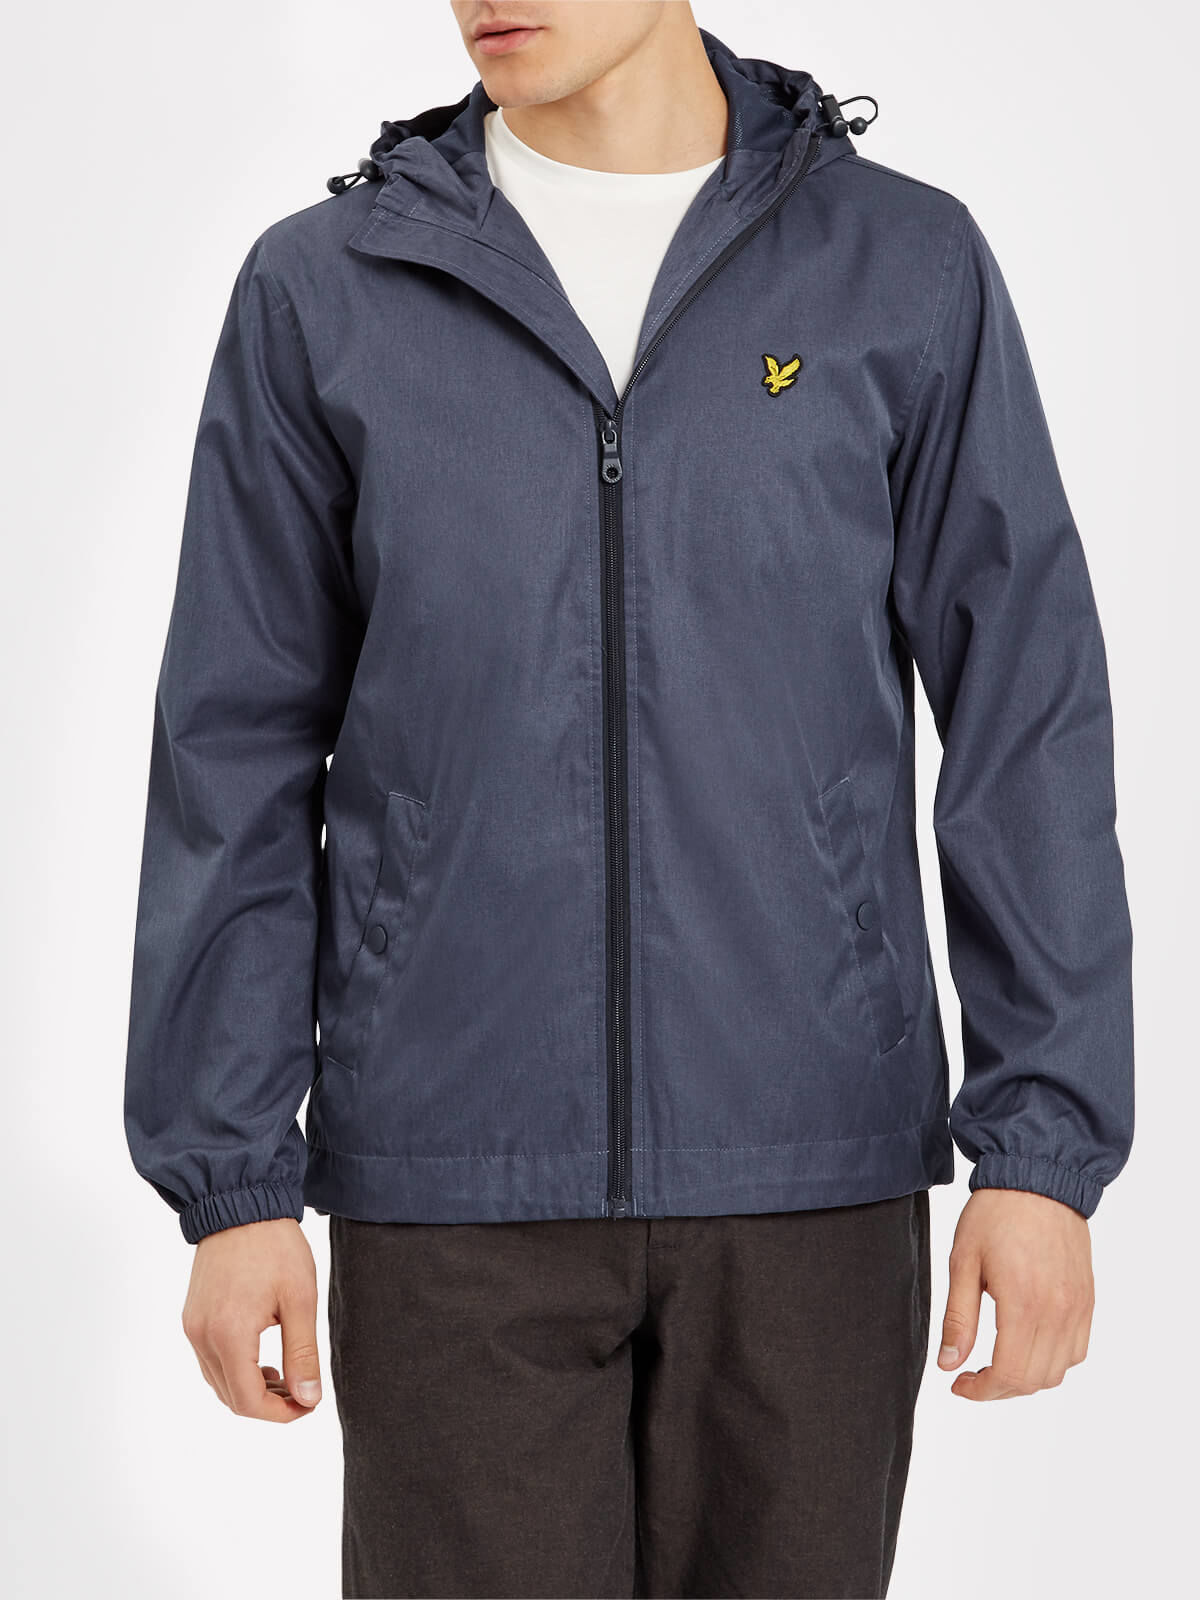 Lyle and Scott Ink Blue Marl Zip Through Hooded Marl Jacket